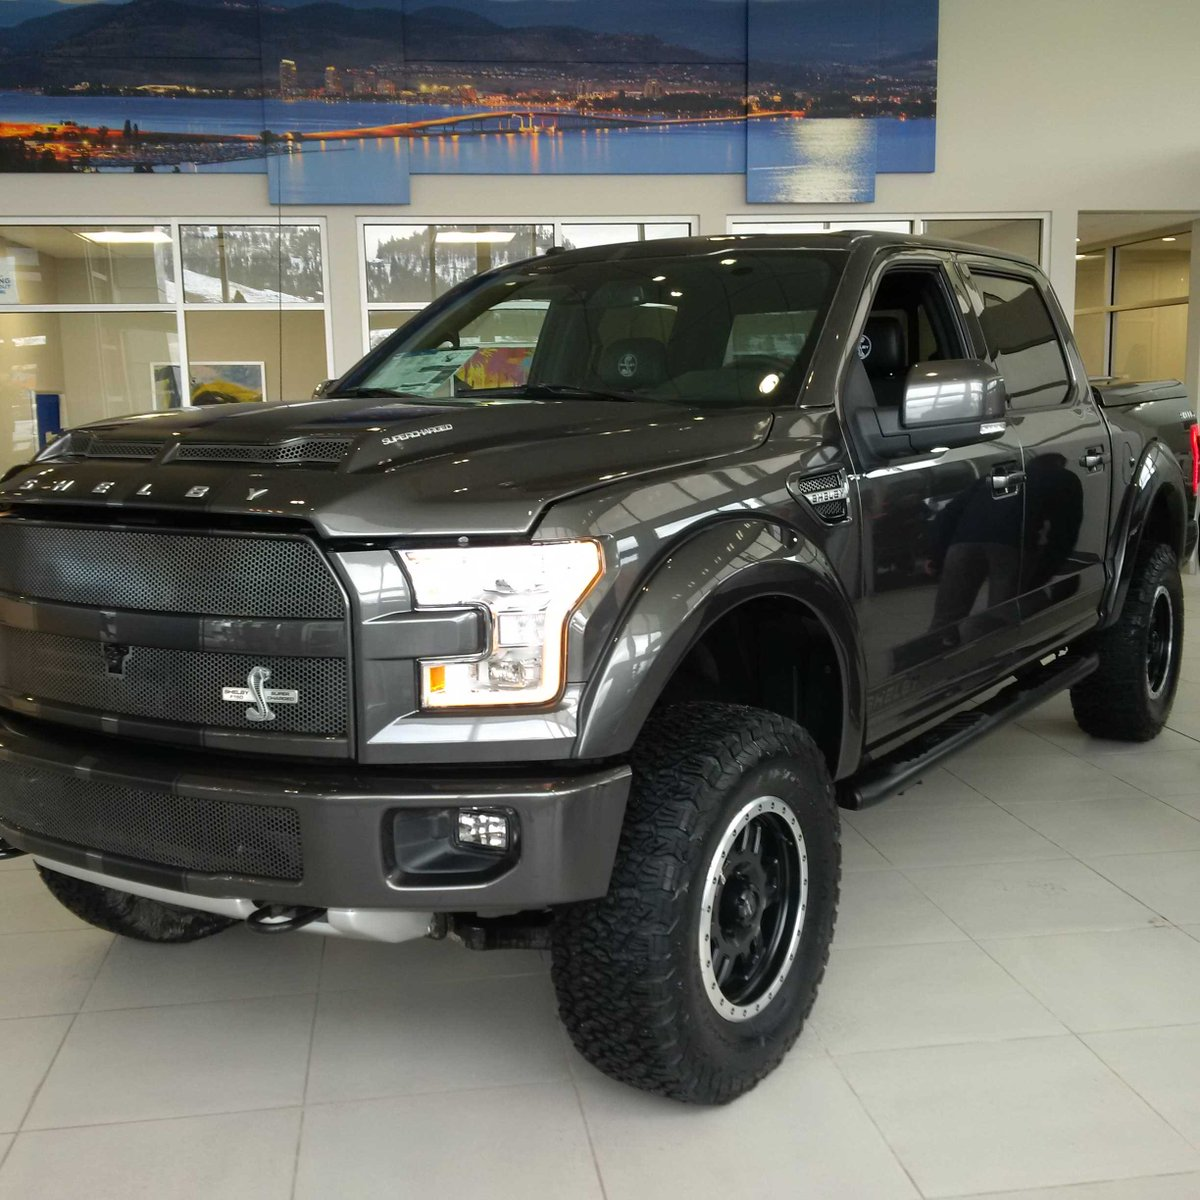 dan tellier on twitter 2016 shelby f150 for sale only at orchard ford kelowna over 700hp. Black Bedroom Furniture Sets. Home Design Ideas